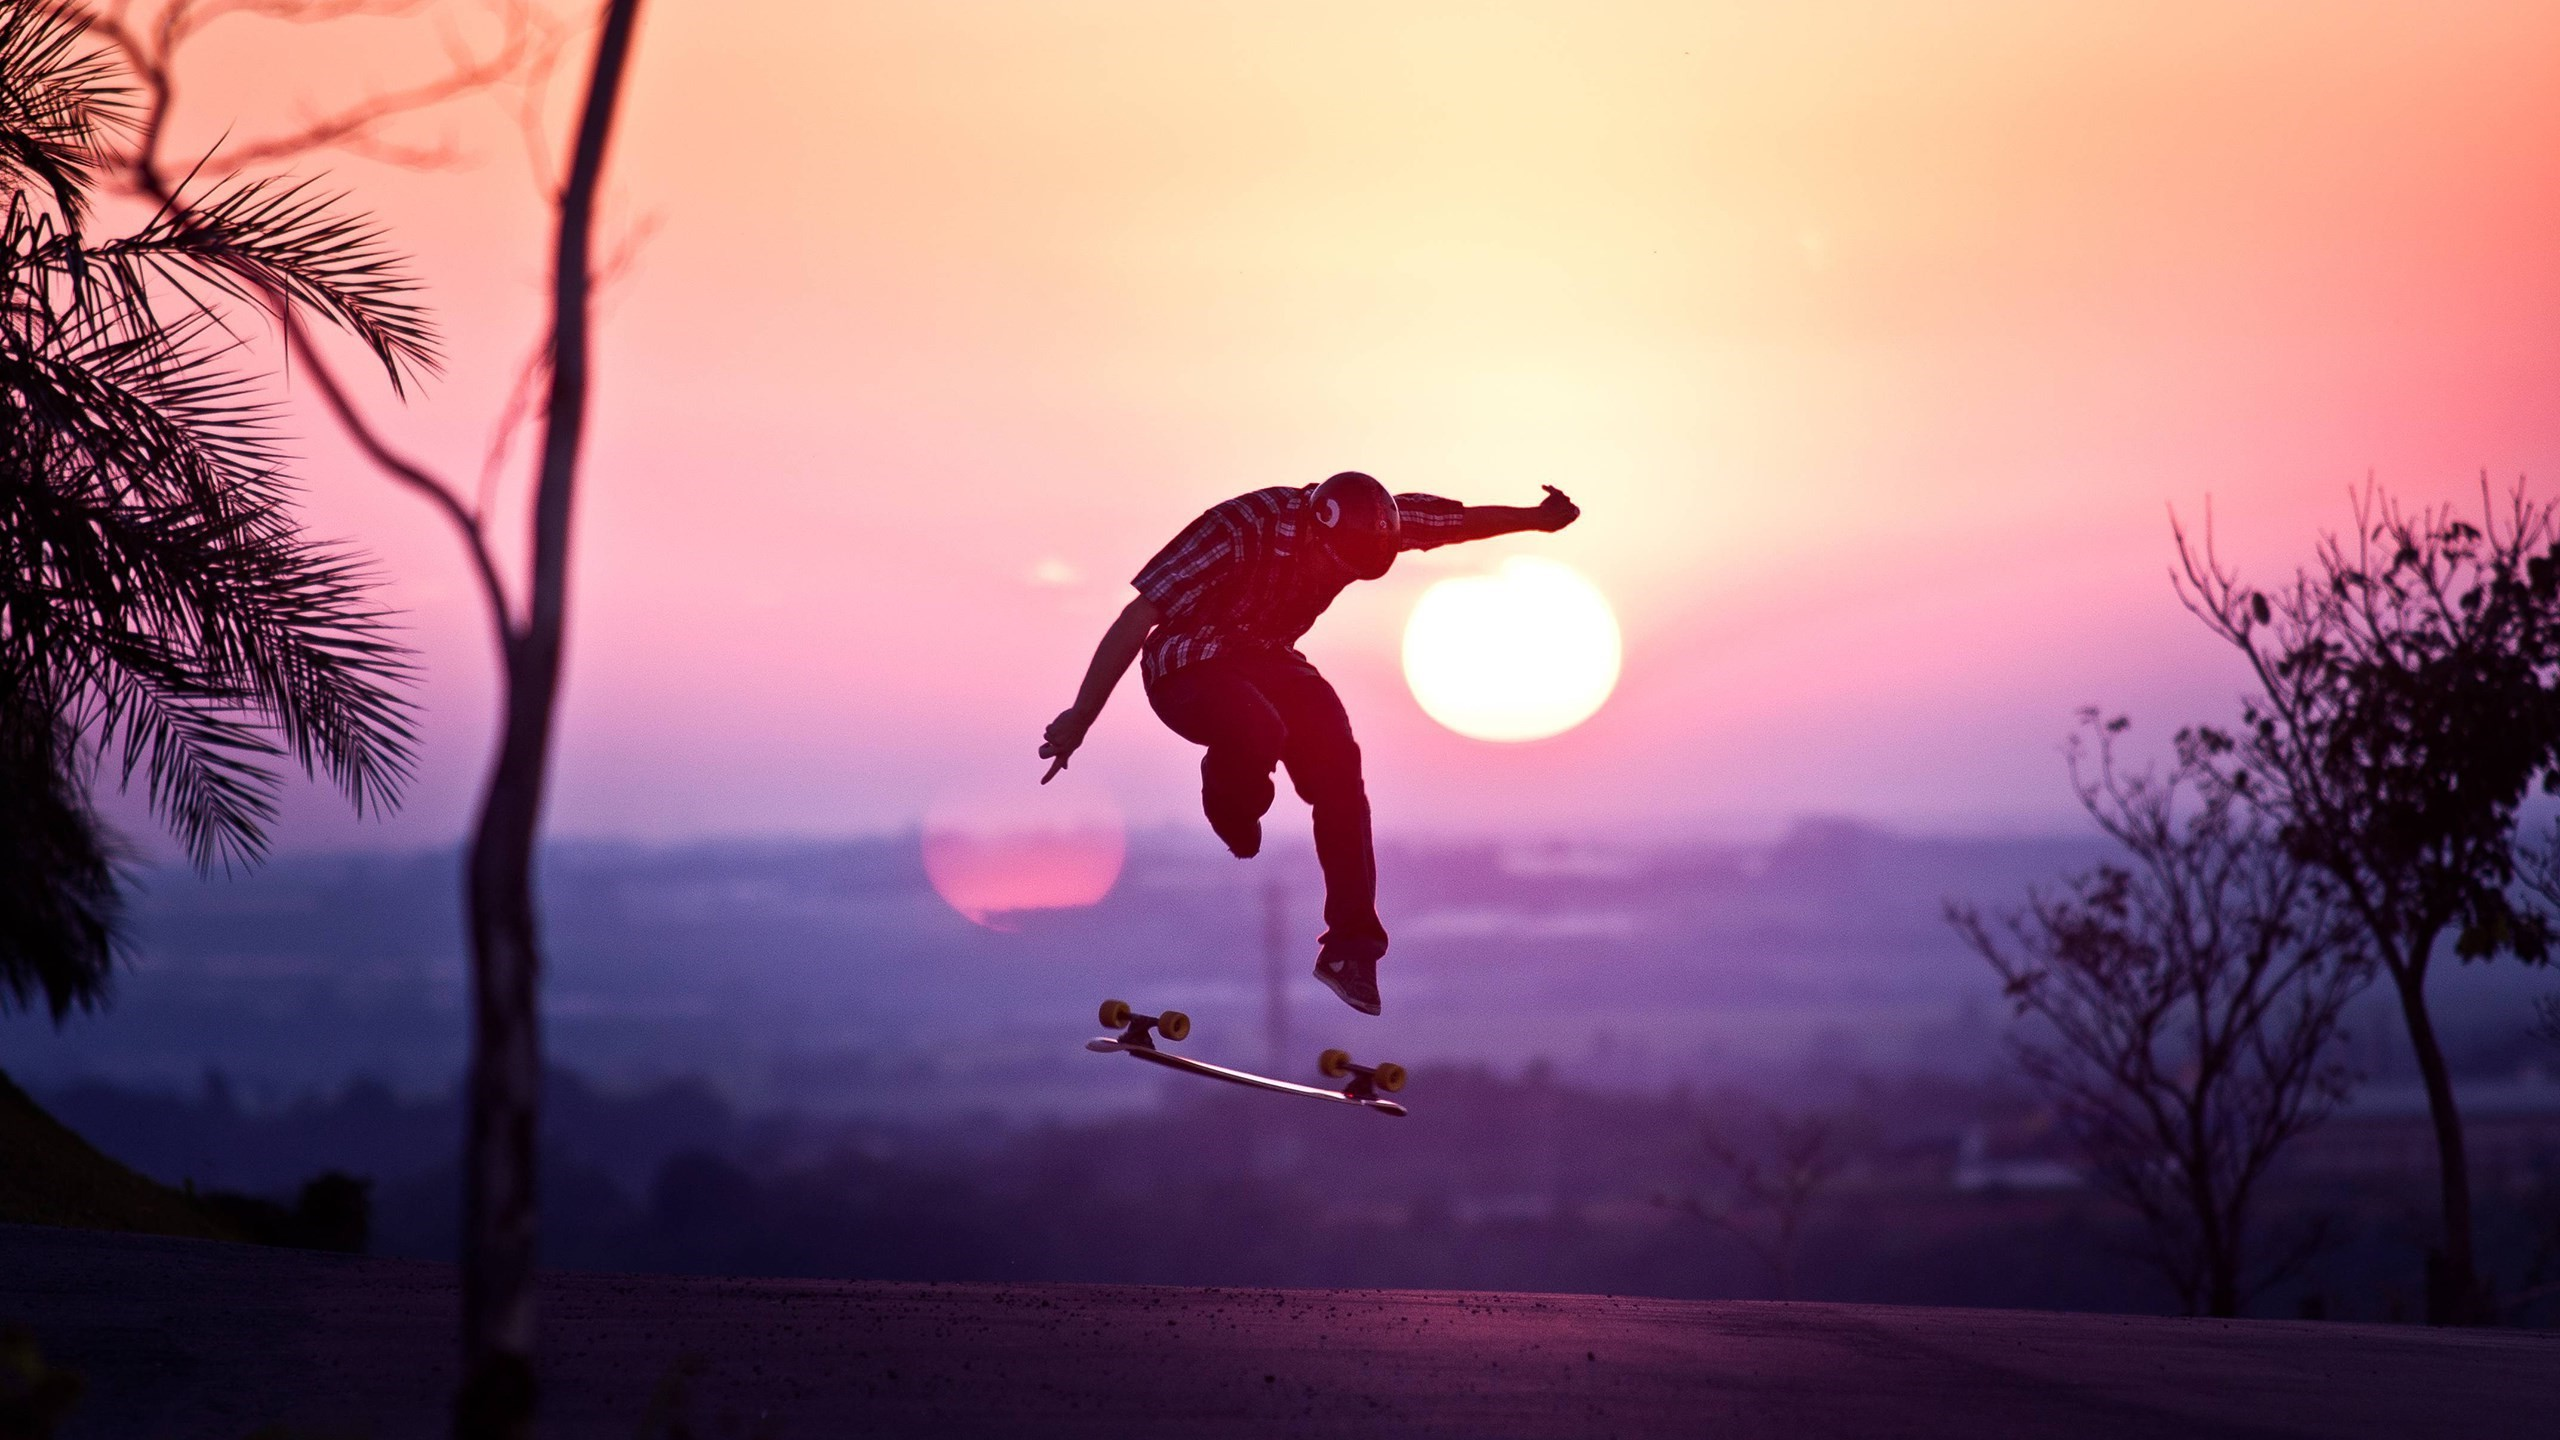 Skateboard Wallpapers Hd 18276 Wallpaper Wallpaper hd 2560x1440